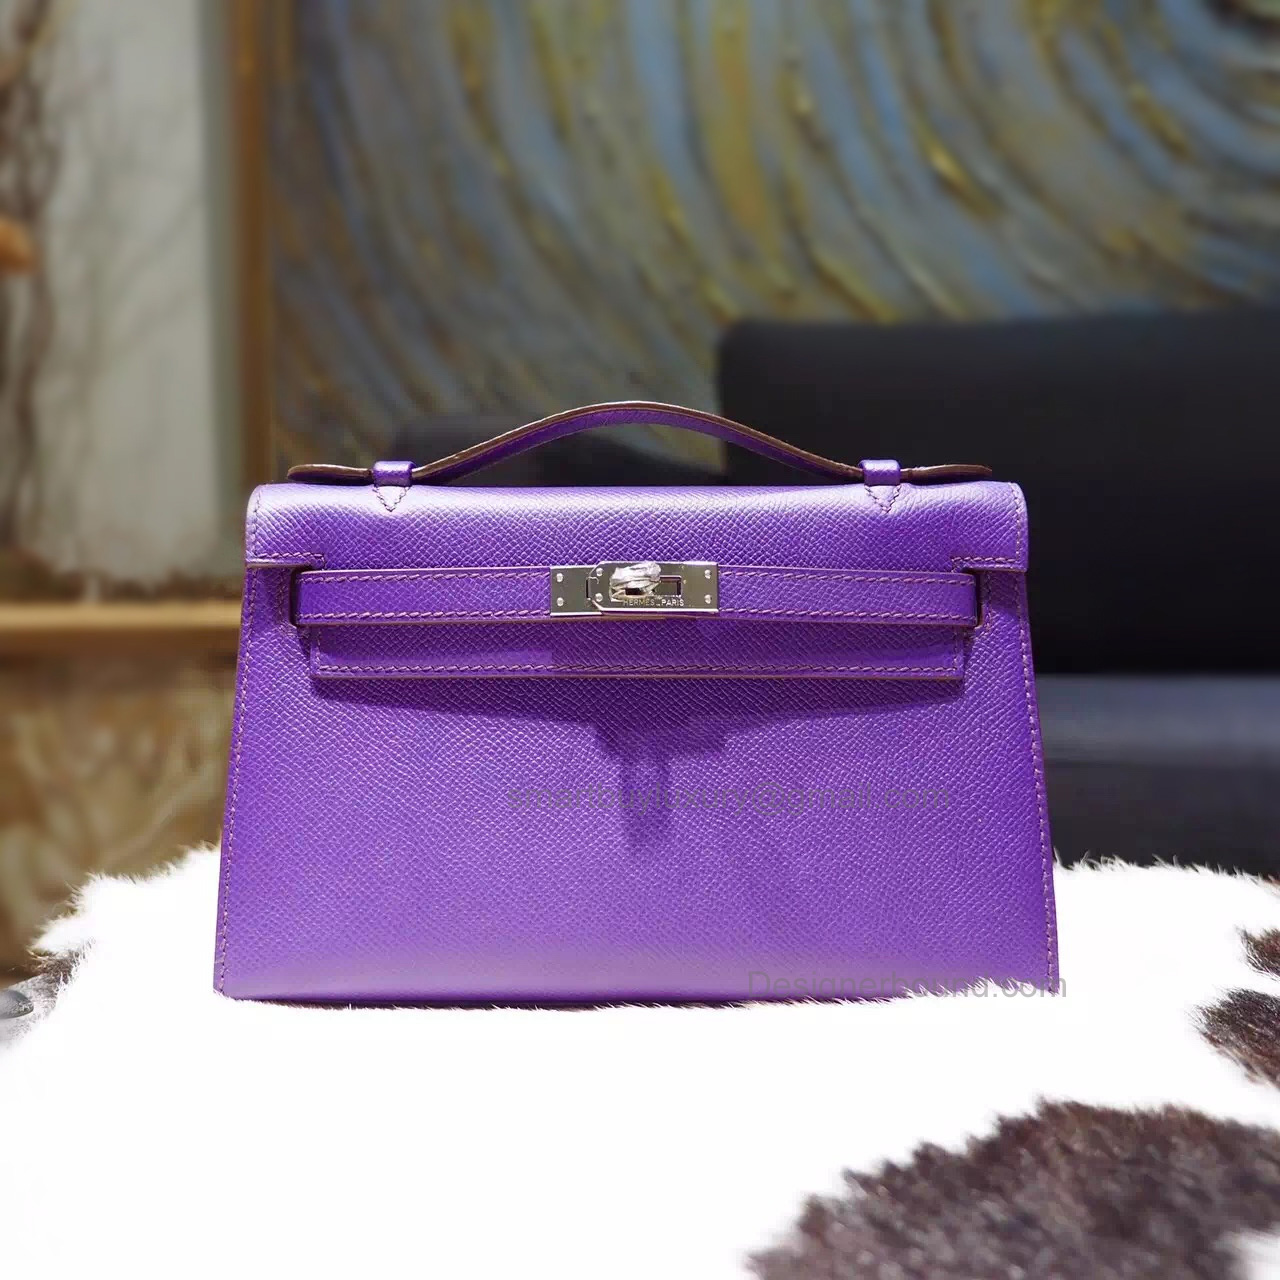 Replica Hermes Mini Kelly 22 Pochette Bag in 9w Crocus Epsom Calfskin PHW